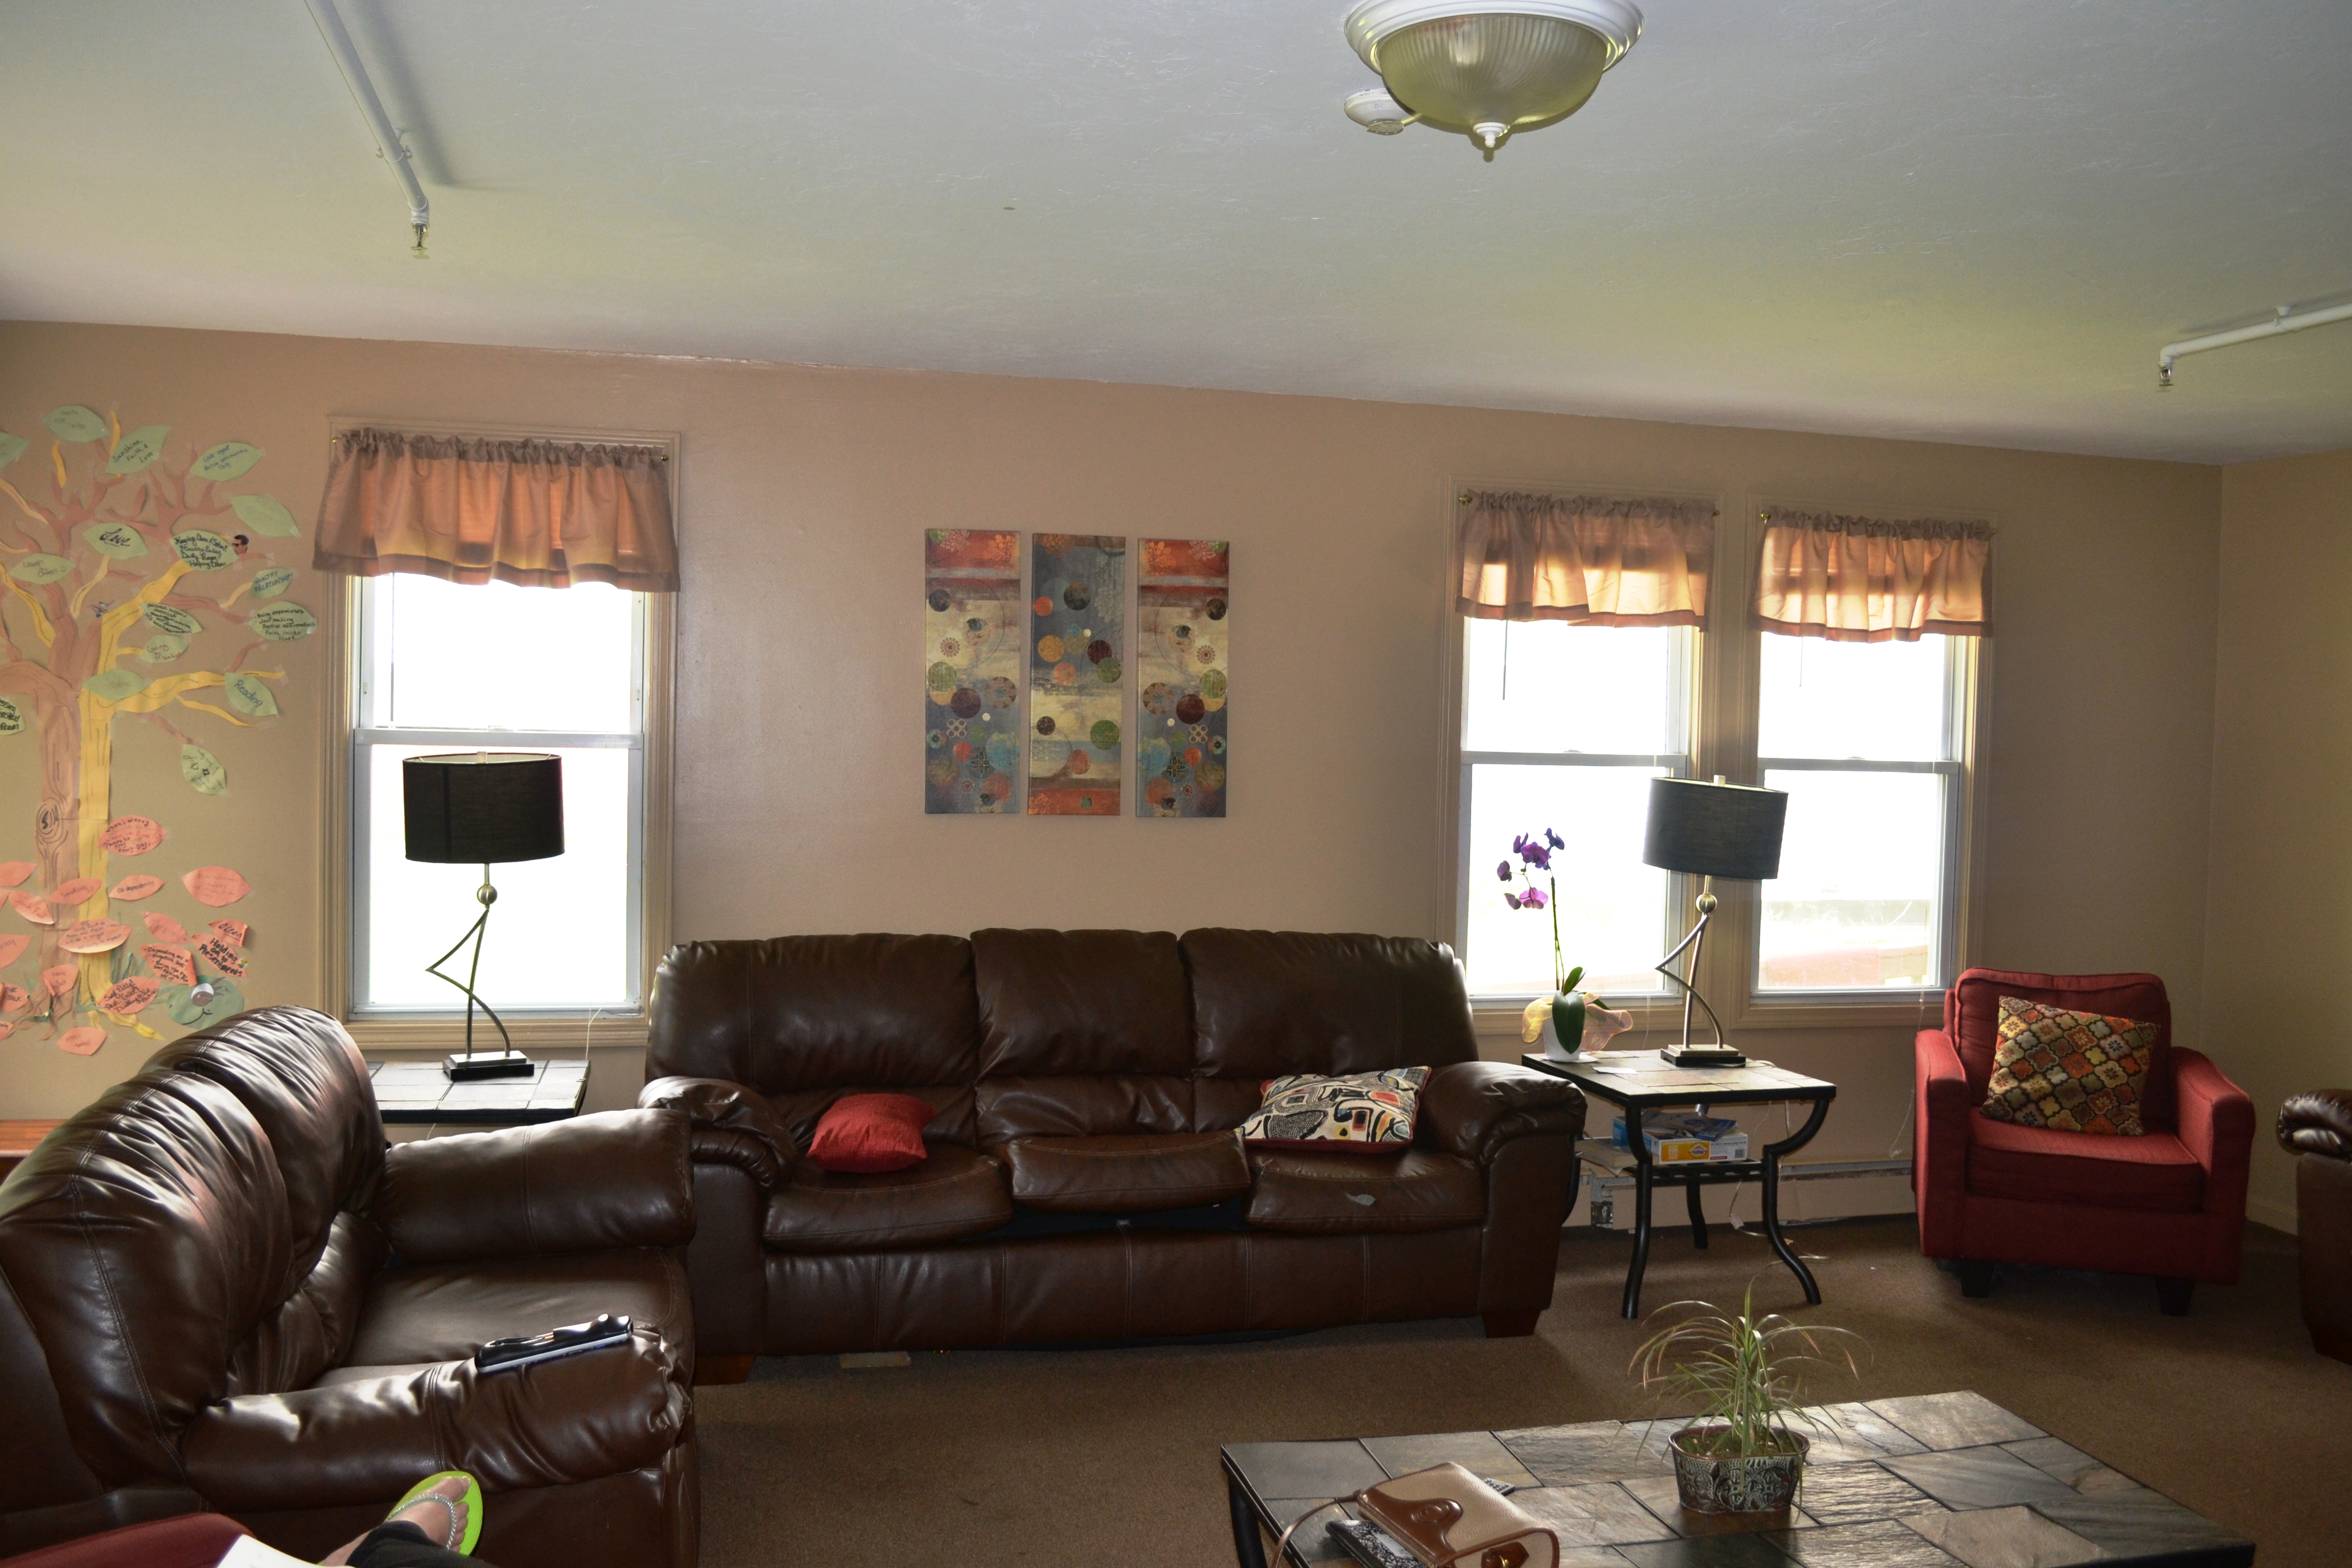 A main common area provides warmth and comfort for those at Beryl's House.